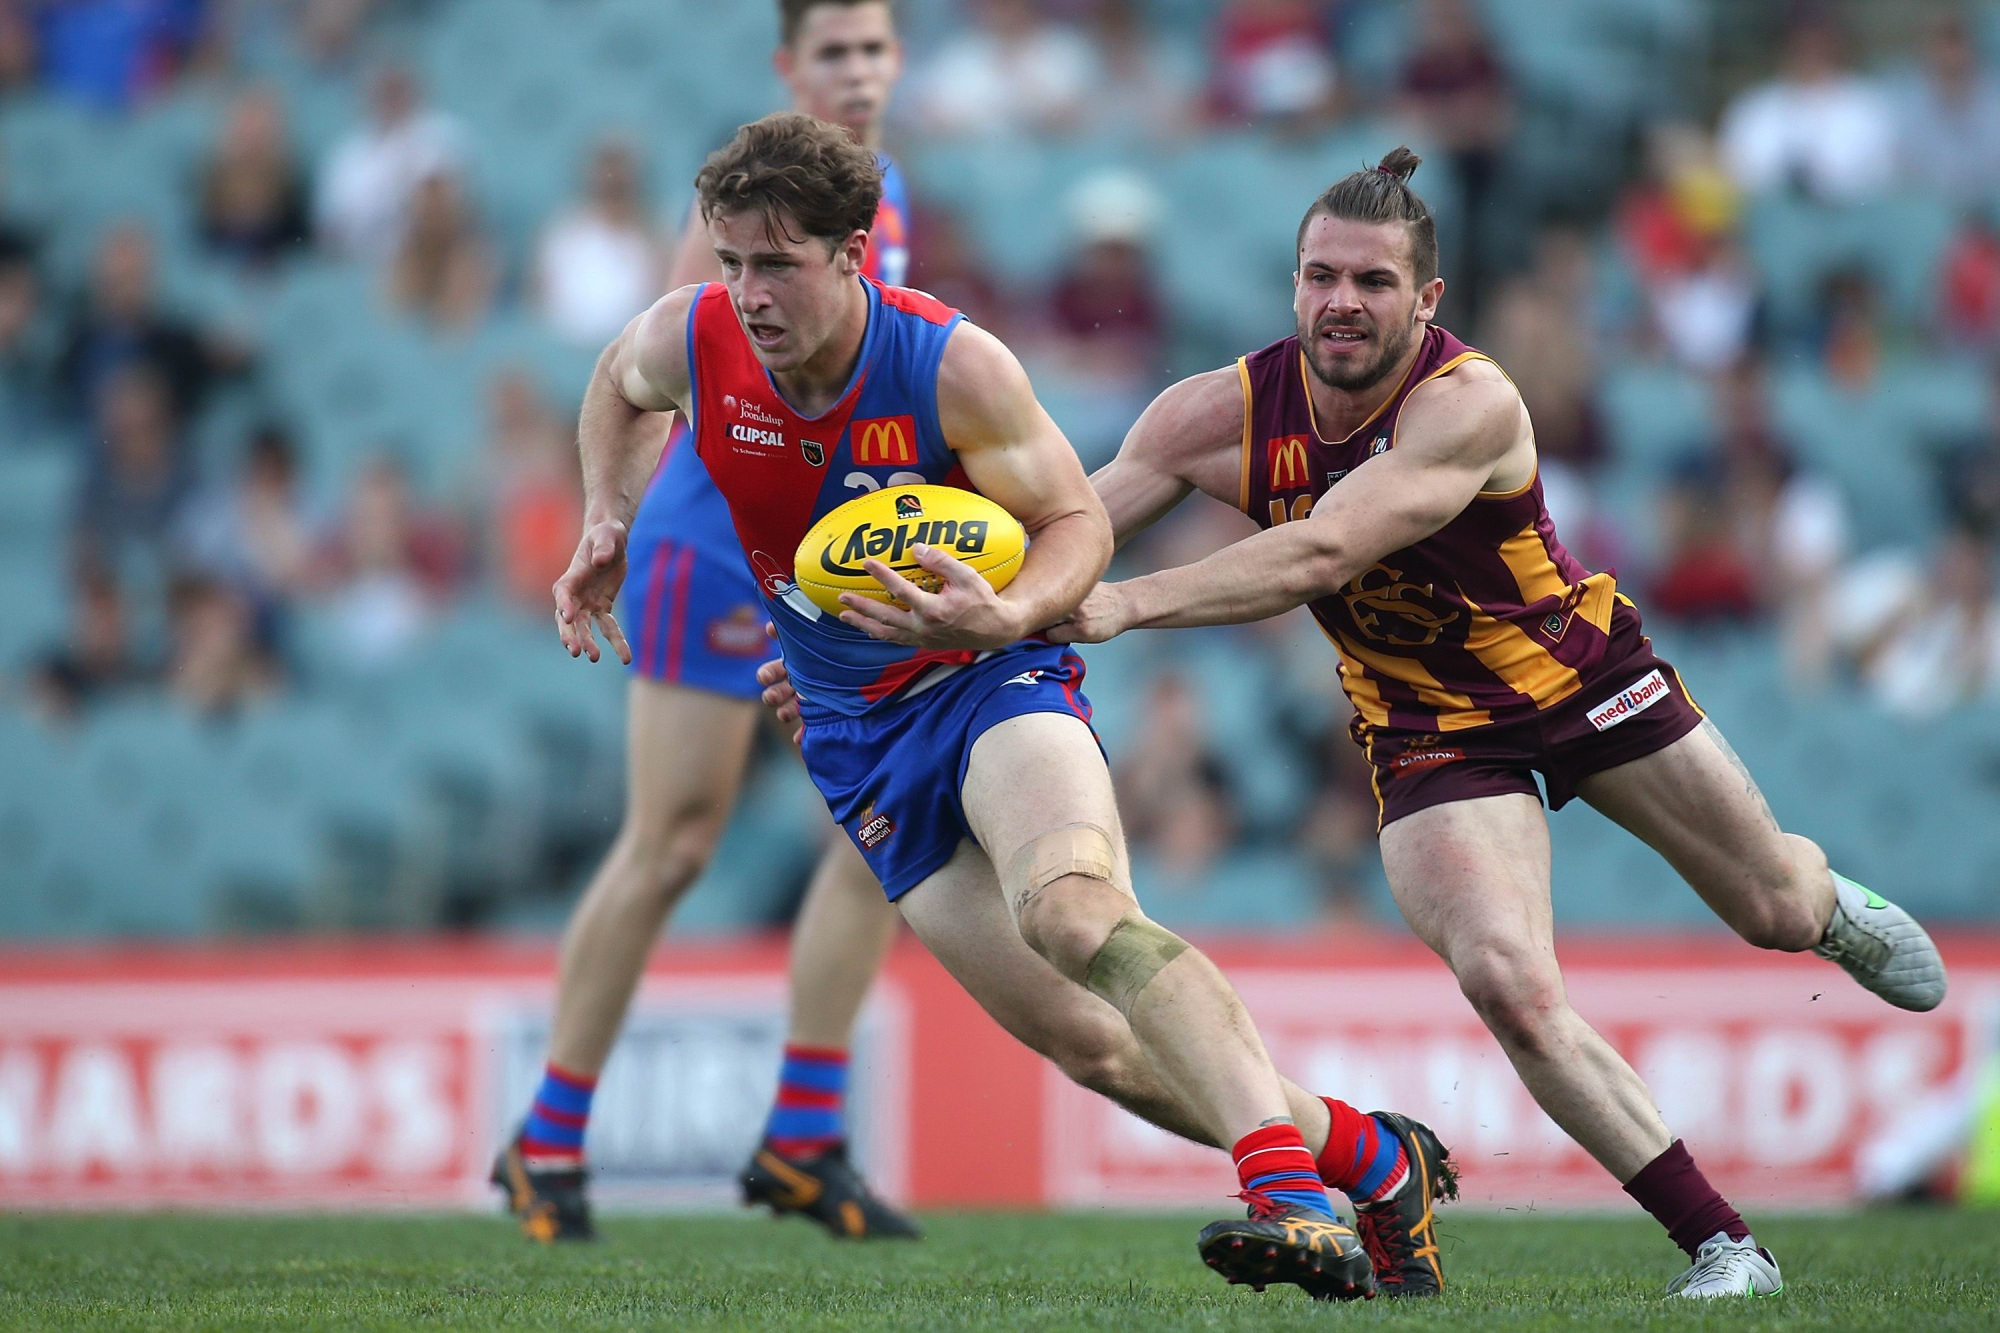 Nick Rodda played the WAFL grand final injured. Picture: Getty Images